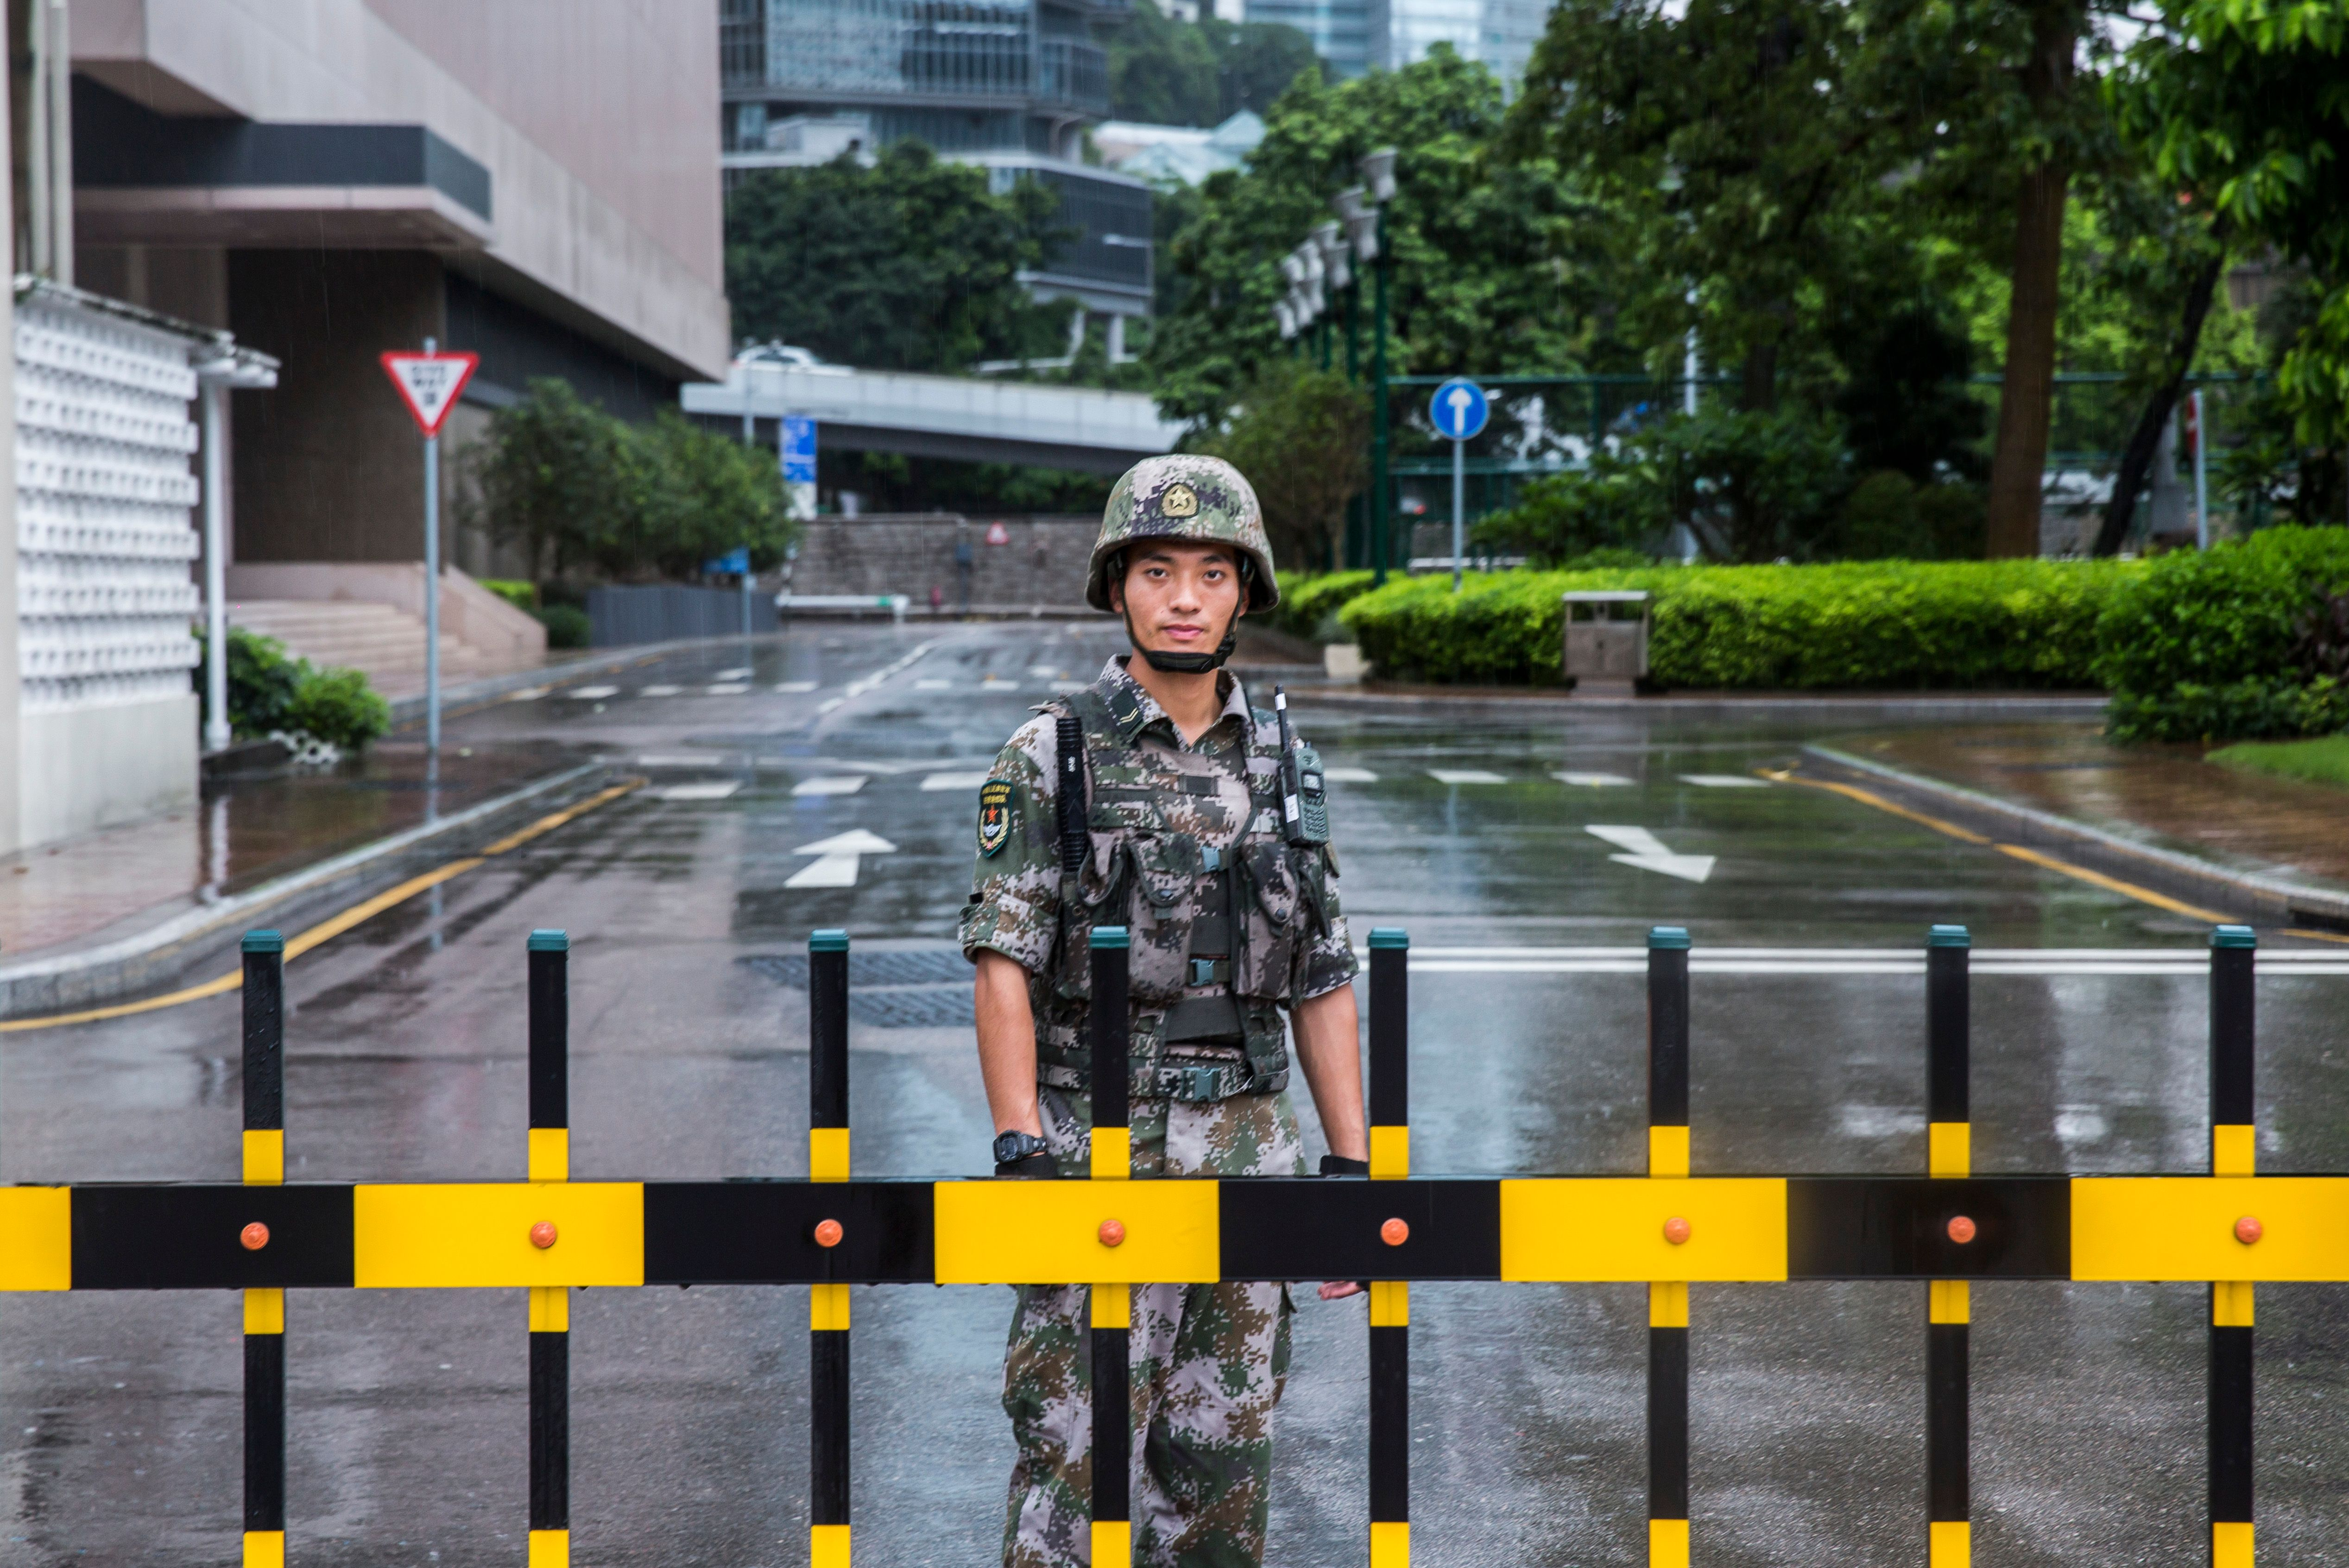 A Chinese People's Liberation Army (PLA) soldier at the Hong Kong Garrison on August 1, 2019.